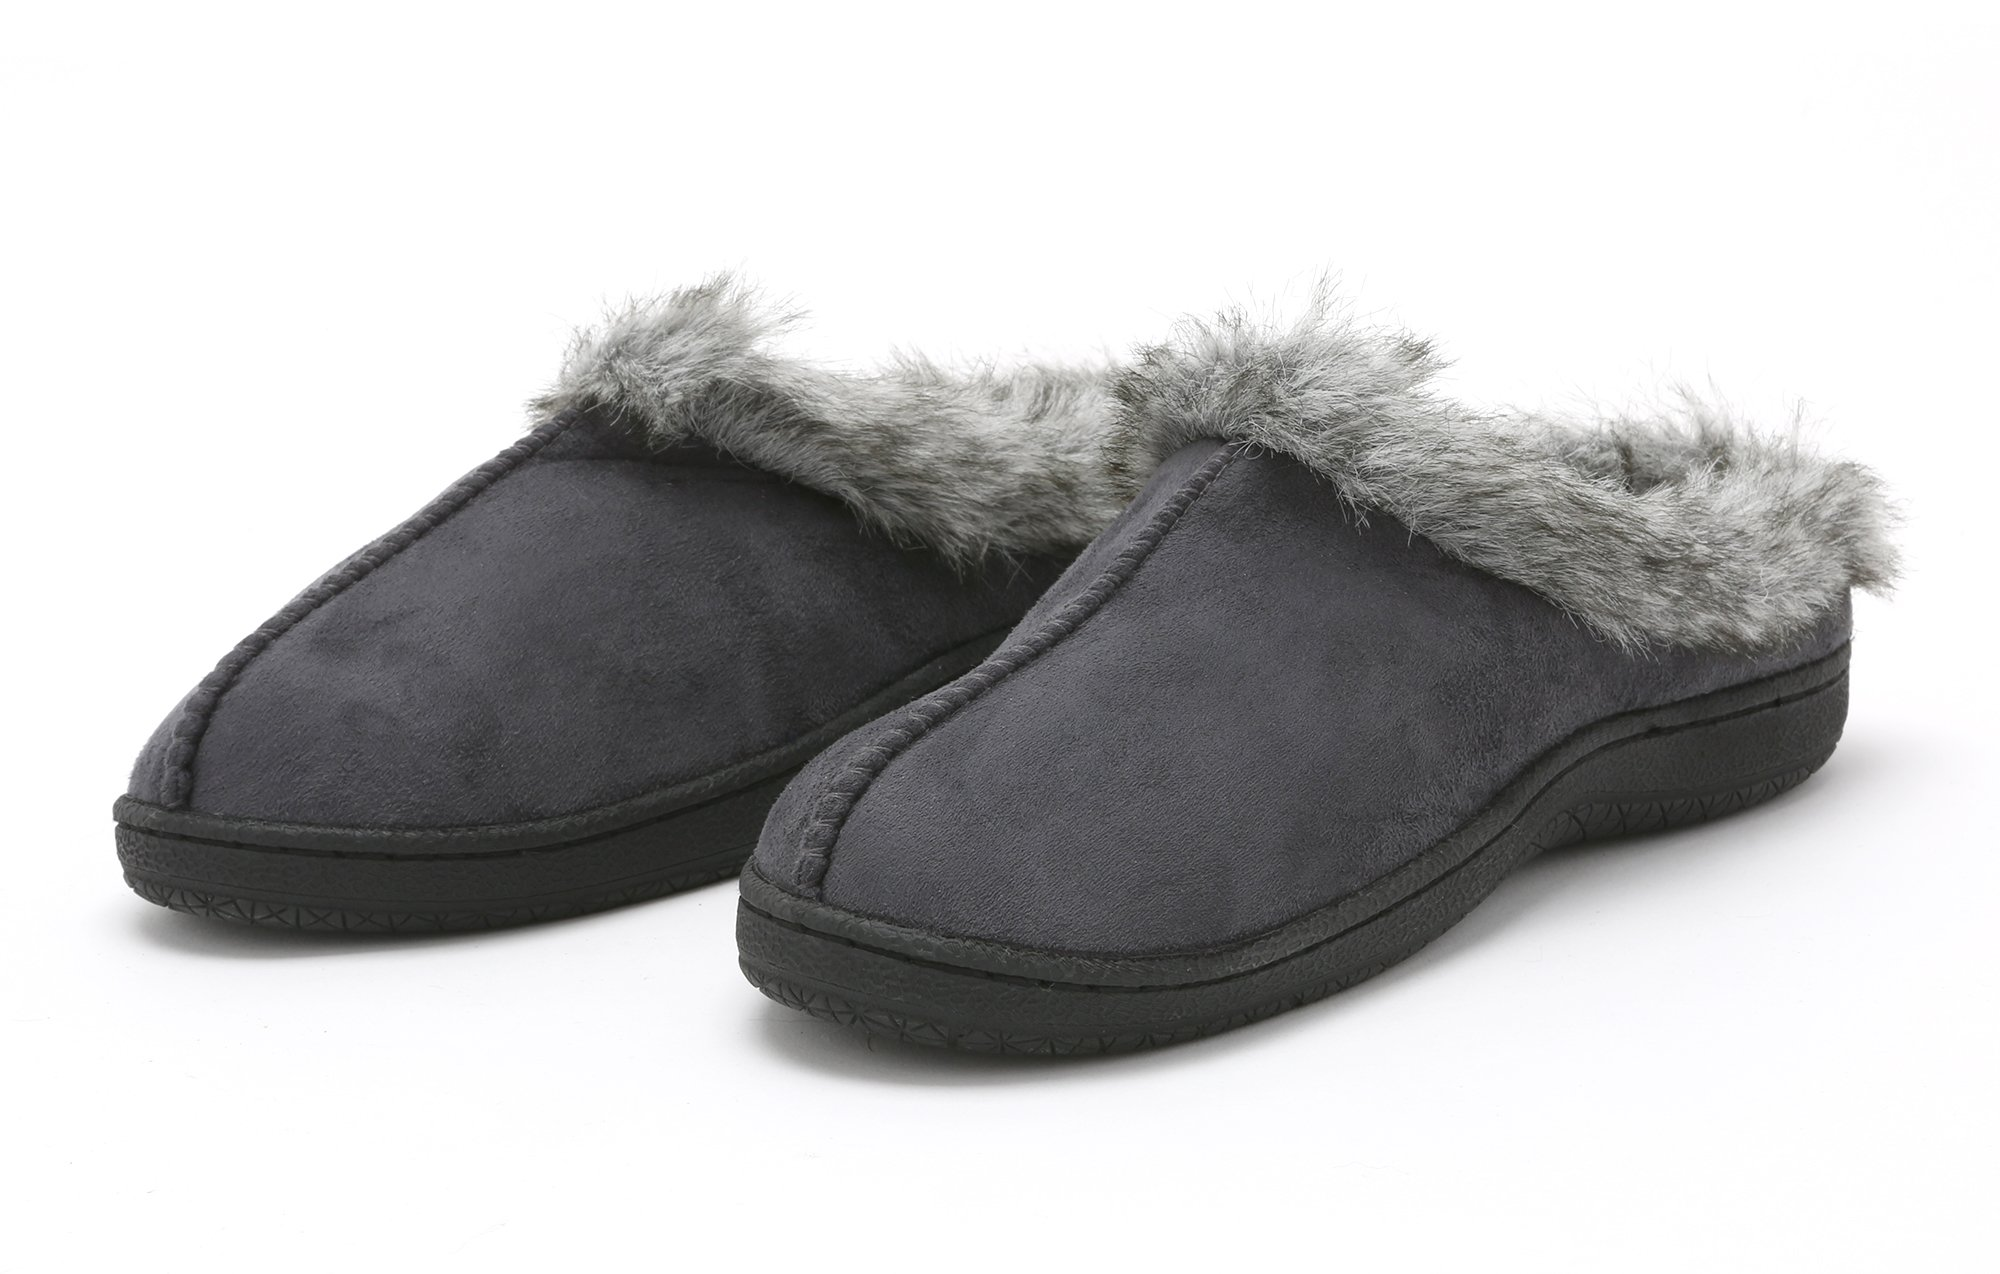 Pembrook Ladies Faux Suede and Fur Slippers – Size M – Comfortable Memory Foam Indoor and Outdoor Non-Skid Sole - Great Plush Slip on House Shoes for adults, women, girls